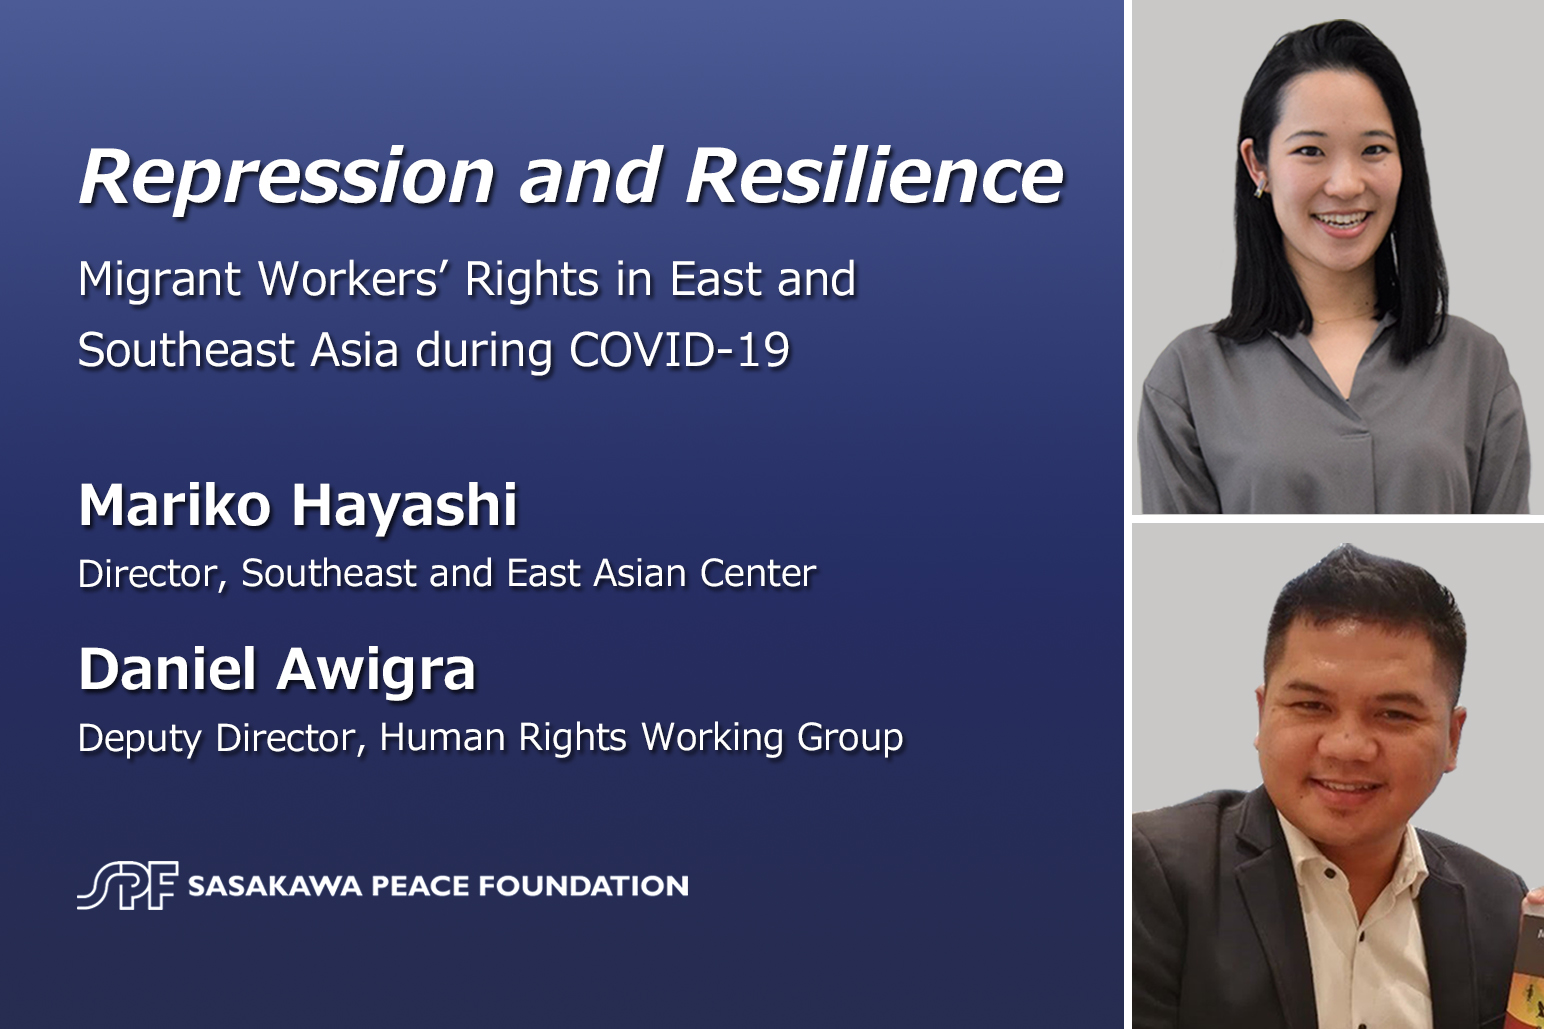 Repression and Resilience: Migrant Workers' Rights in East and Southeast Asia during COVID-19